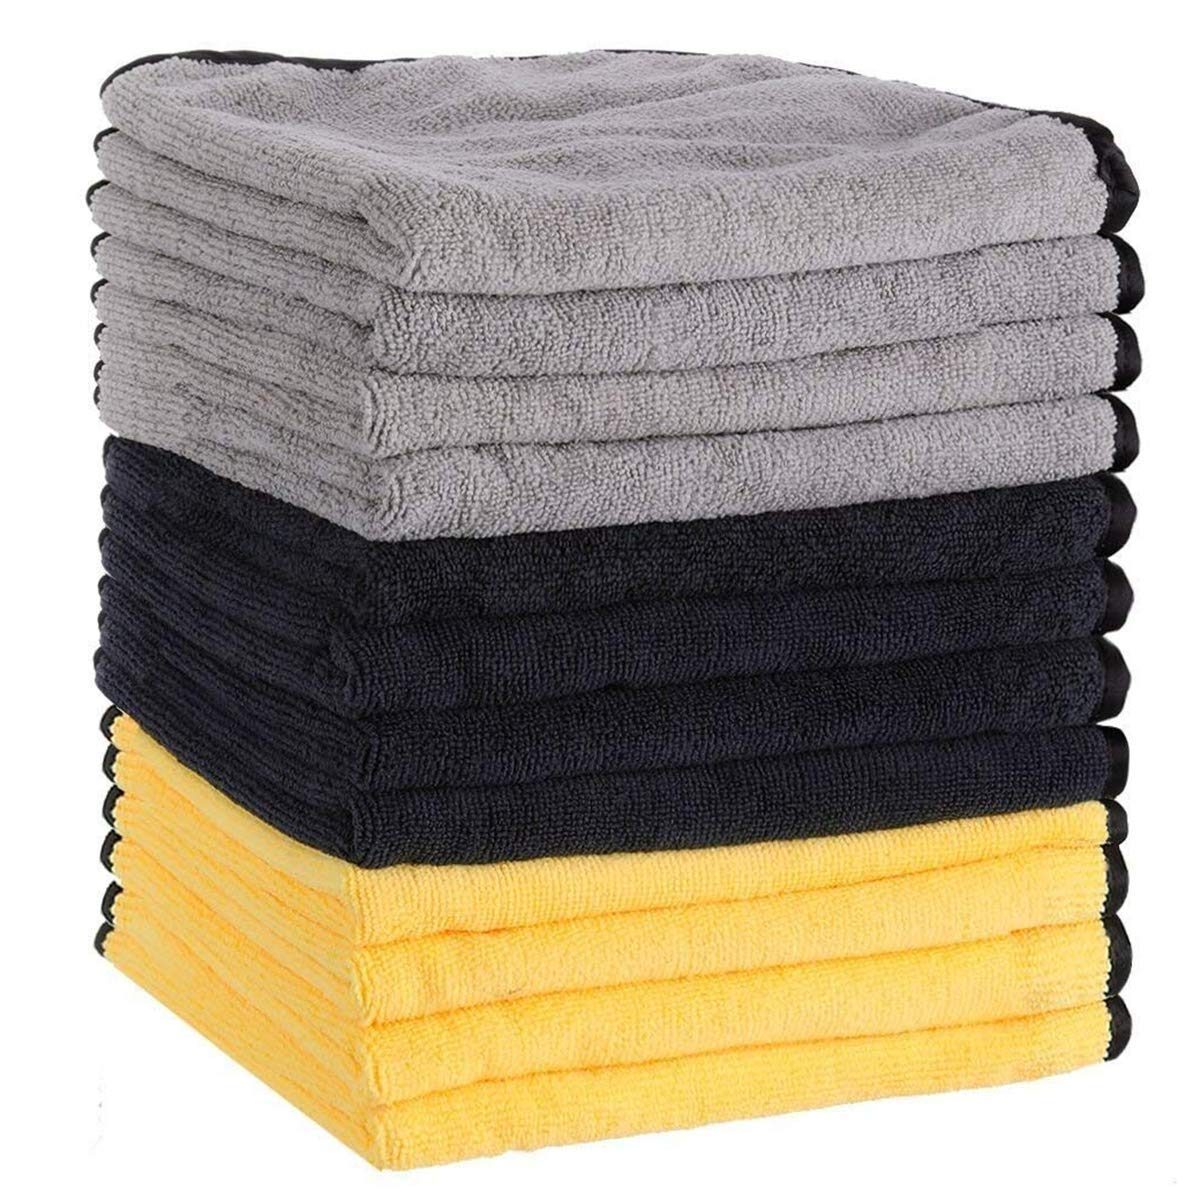 MATCC Microfiber Cleaning Cloths 12 Pack Premium Microfiber Towels 16'' x 16'' Detailing Or Drying Towels for Cleaning Car Windows Dishes Yomoid